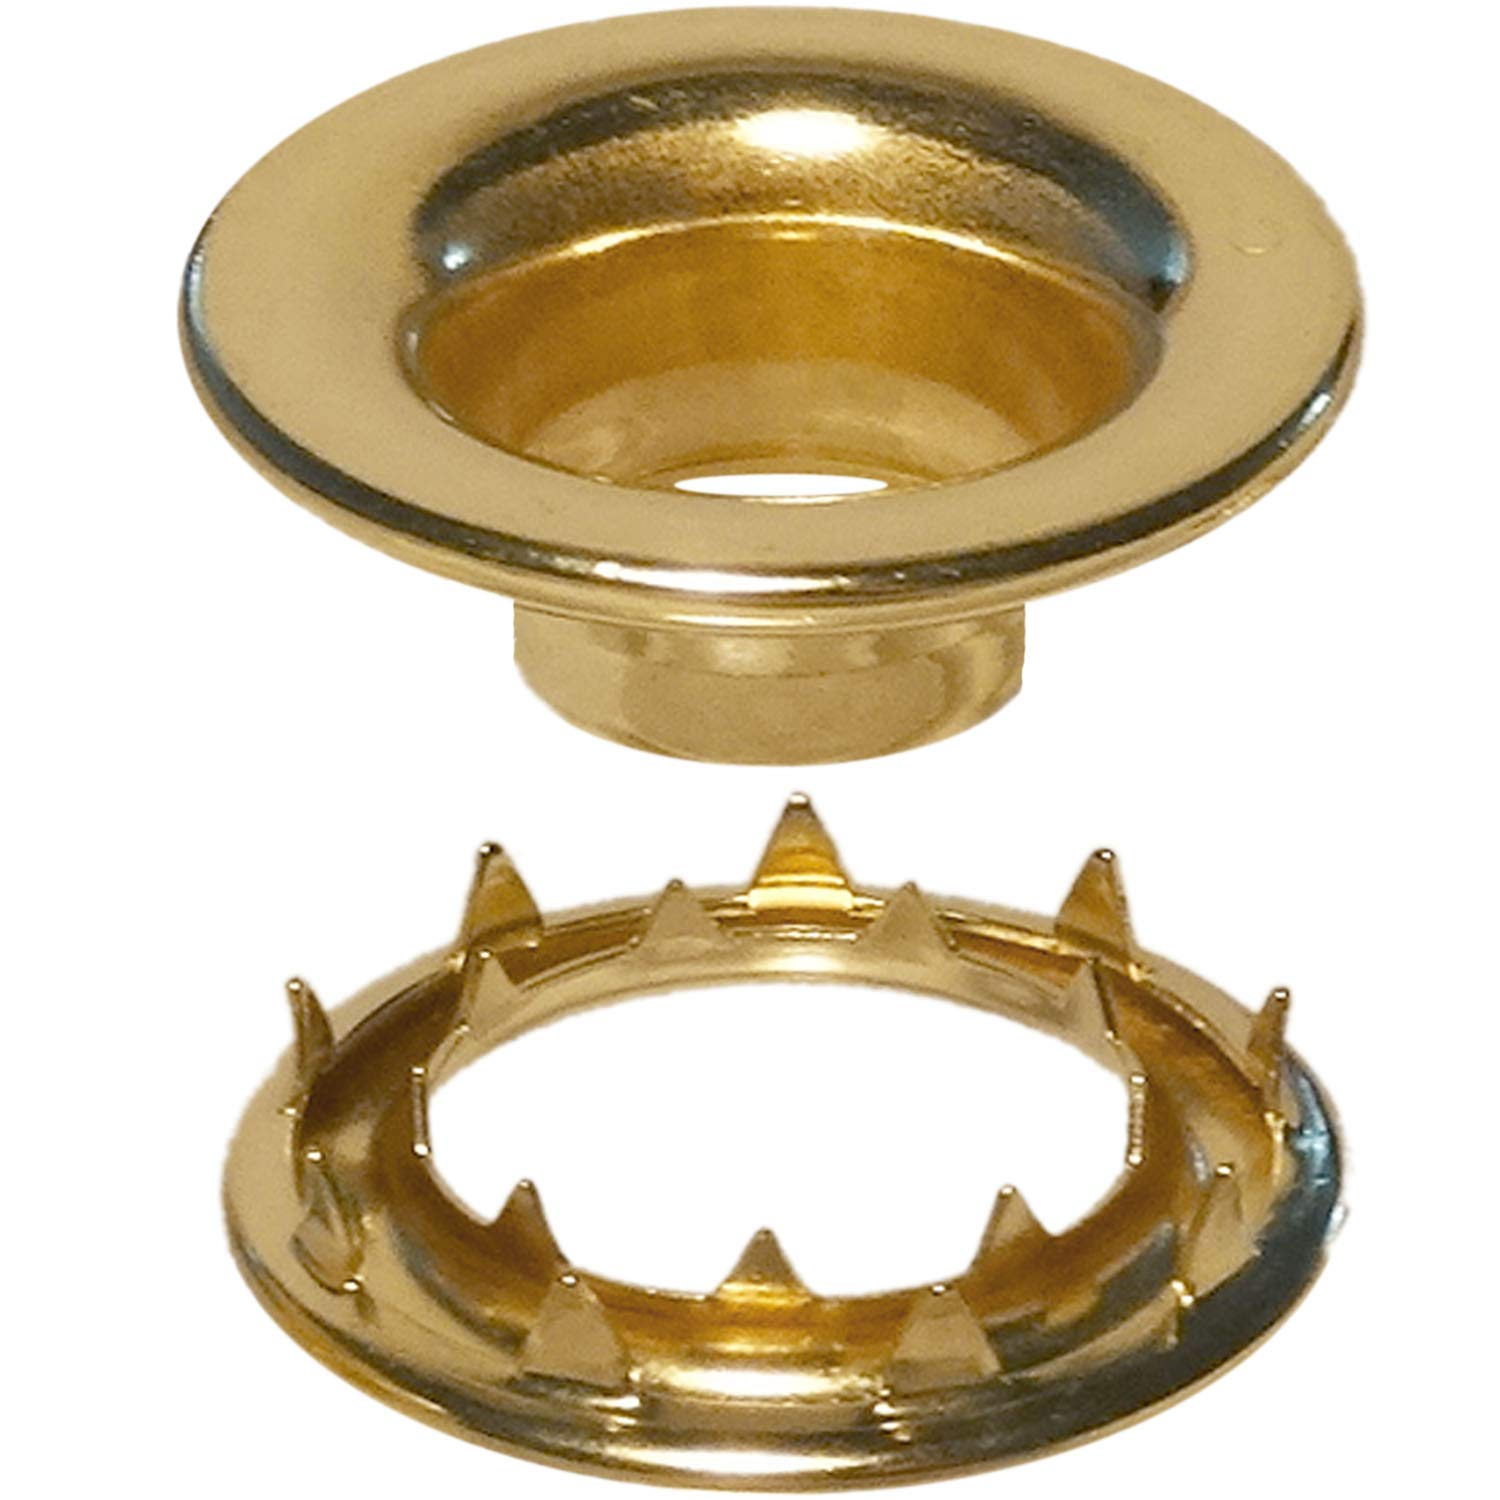 Stimpson Rolled Rim Grommet and Spur Washer Brass Durable, Reliable, Heavy-Duty #5 Set (144 pieces of each)